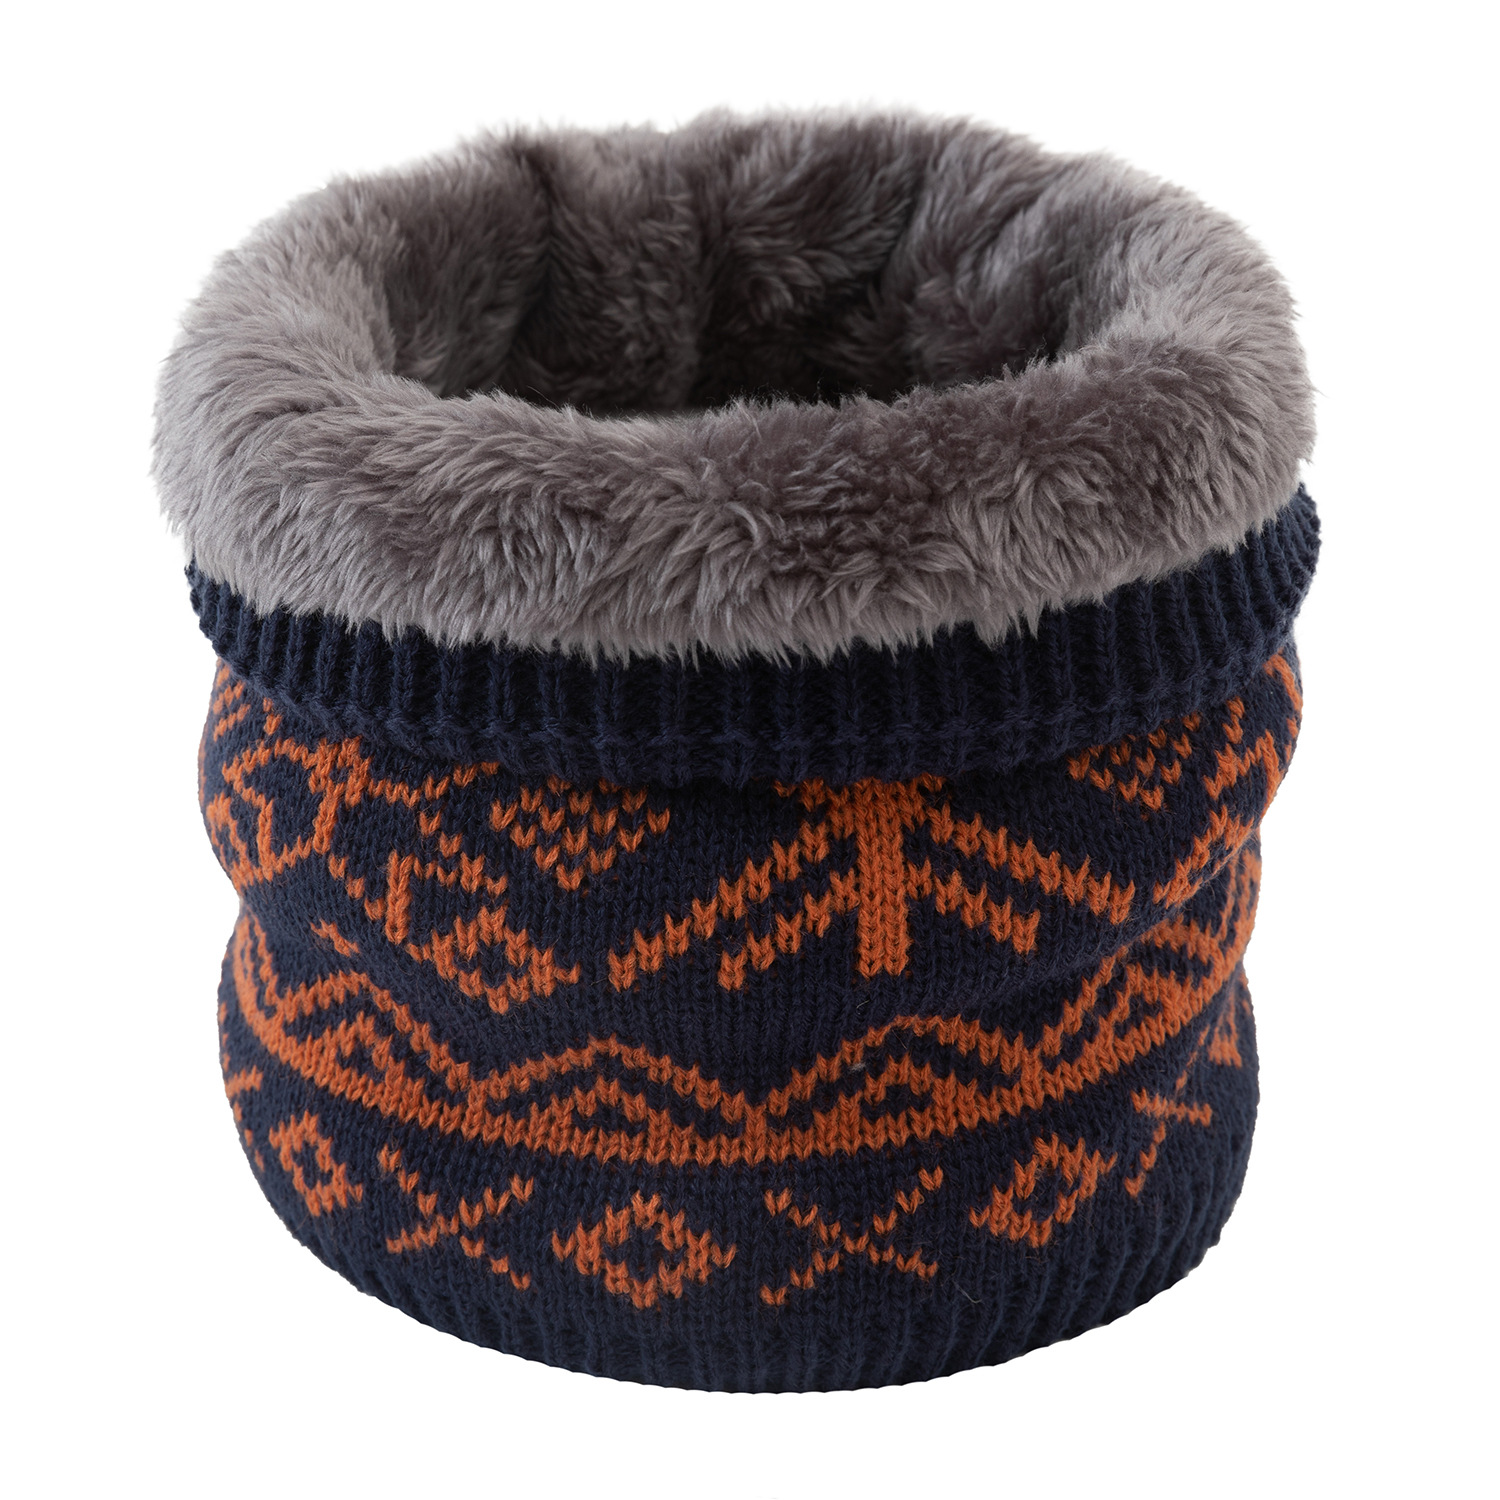 Intensive Artificial Wool Pullover Neck Scarf for Heavy Snowfalls